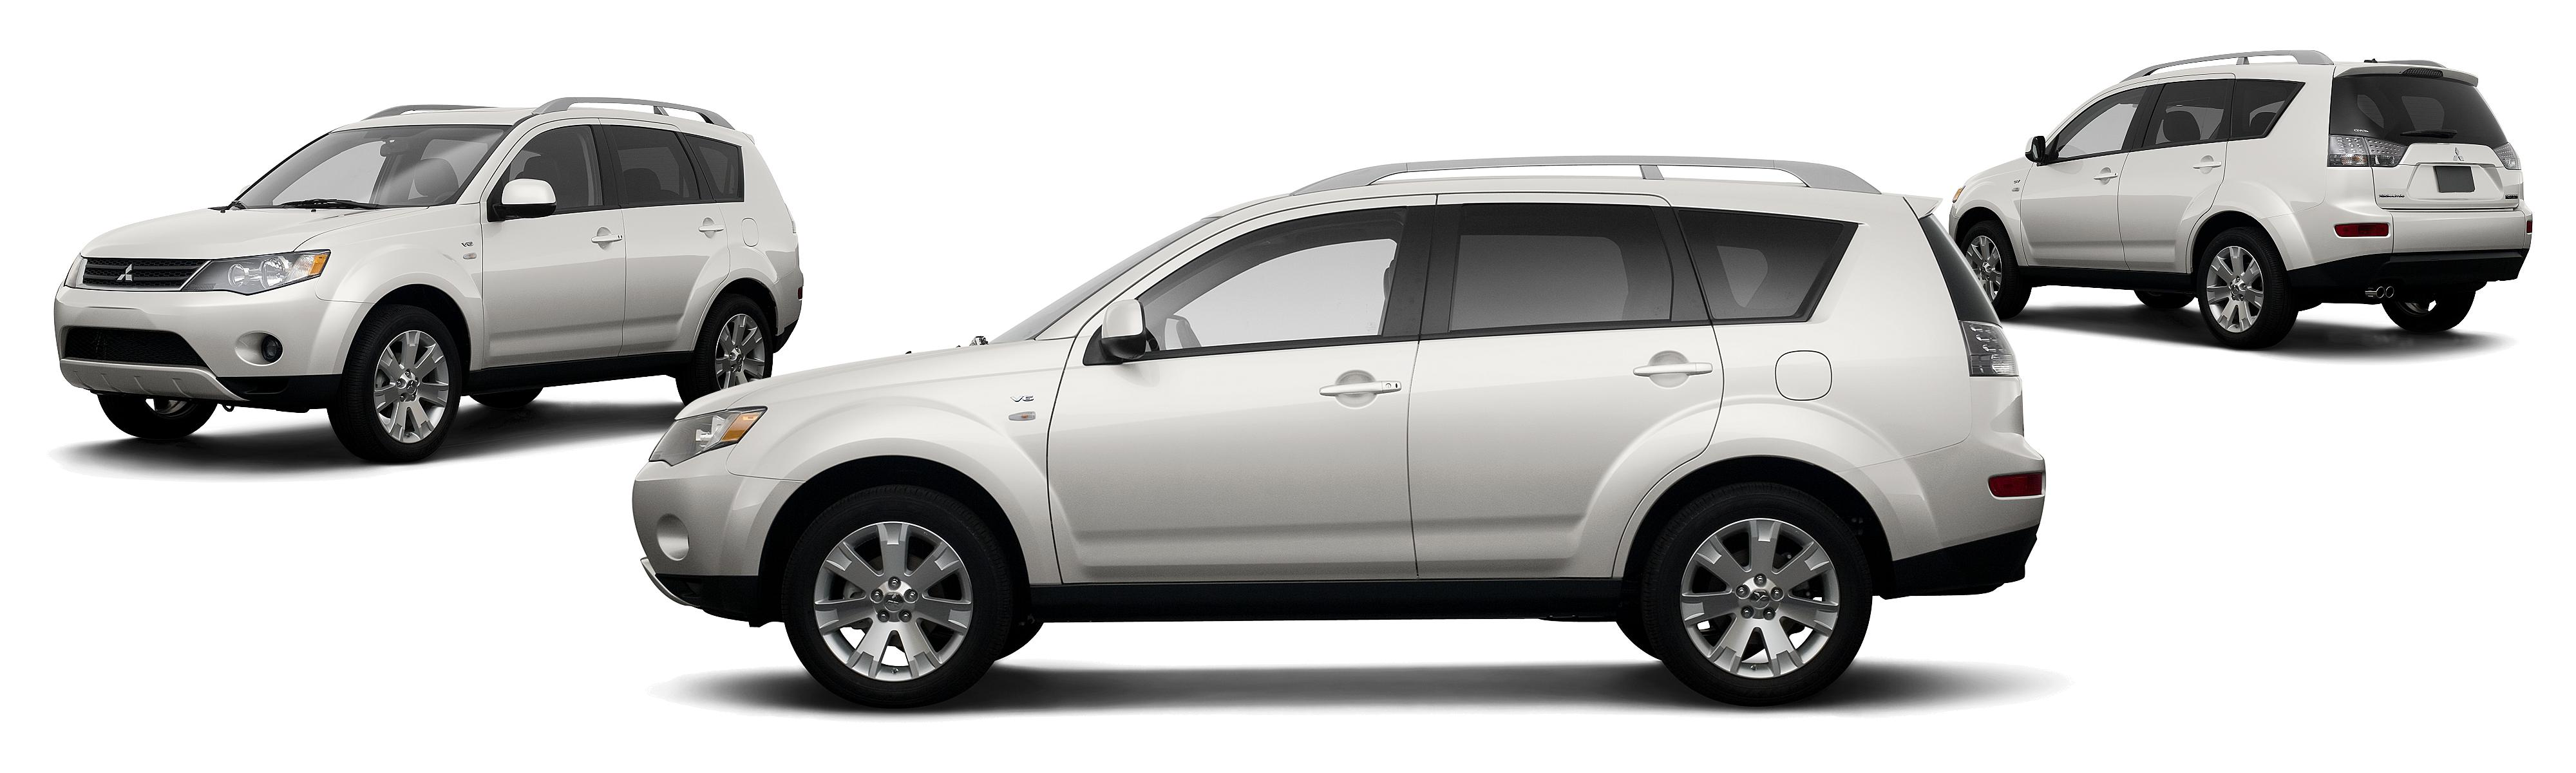 peugeot 3008 white pearl with White Mitsubishi Outlander on Opel Grandland X 2017 Couleurs moreover Peugeot 3008 Gt Line At 2017 44327 together with 5008 Suv 12 Puretech Allure 5dr likewise Peugeot New 3008 Gt 2016 Pearl White Norev 85455 0 furthermore Peugeot 3008 Tout Sur Le Crossover De La Marque Au Lion.